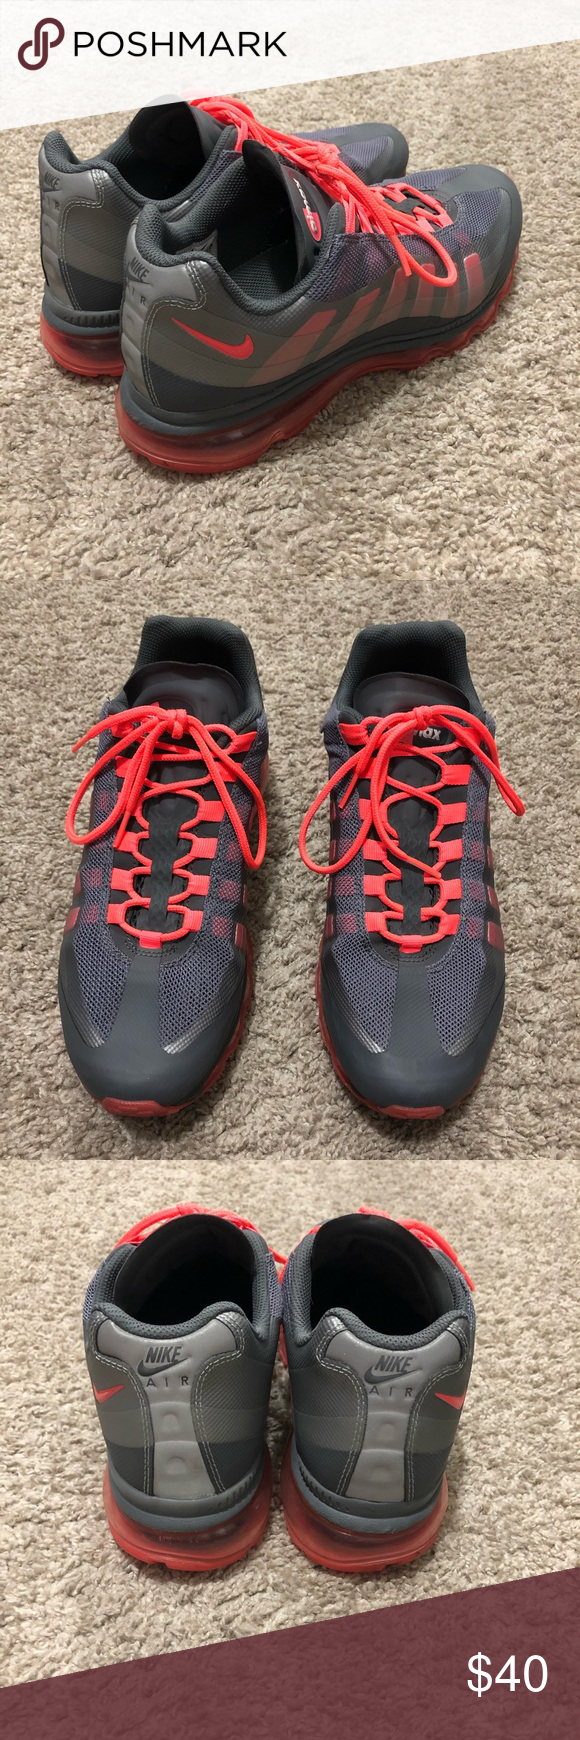 best loved f5031 84dcc Nike Air Max 95 360 Silver Orange Womens Sz US 10 Nike Air Max 95 360 BB  Running Shoes Silver 511308 061 Orange Womens Sz US 10. Does have 1 small  tear, ...